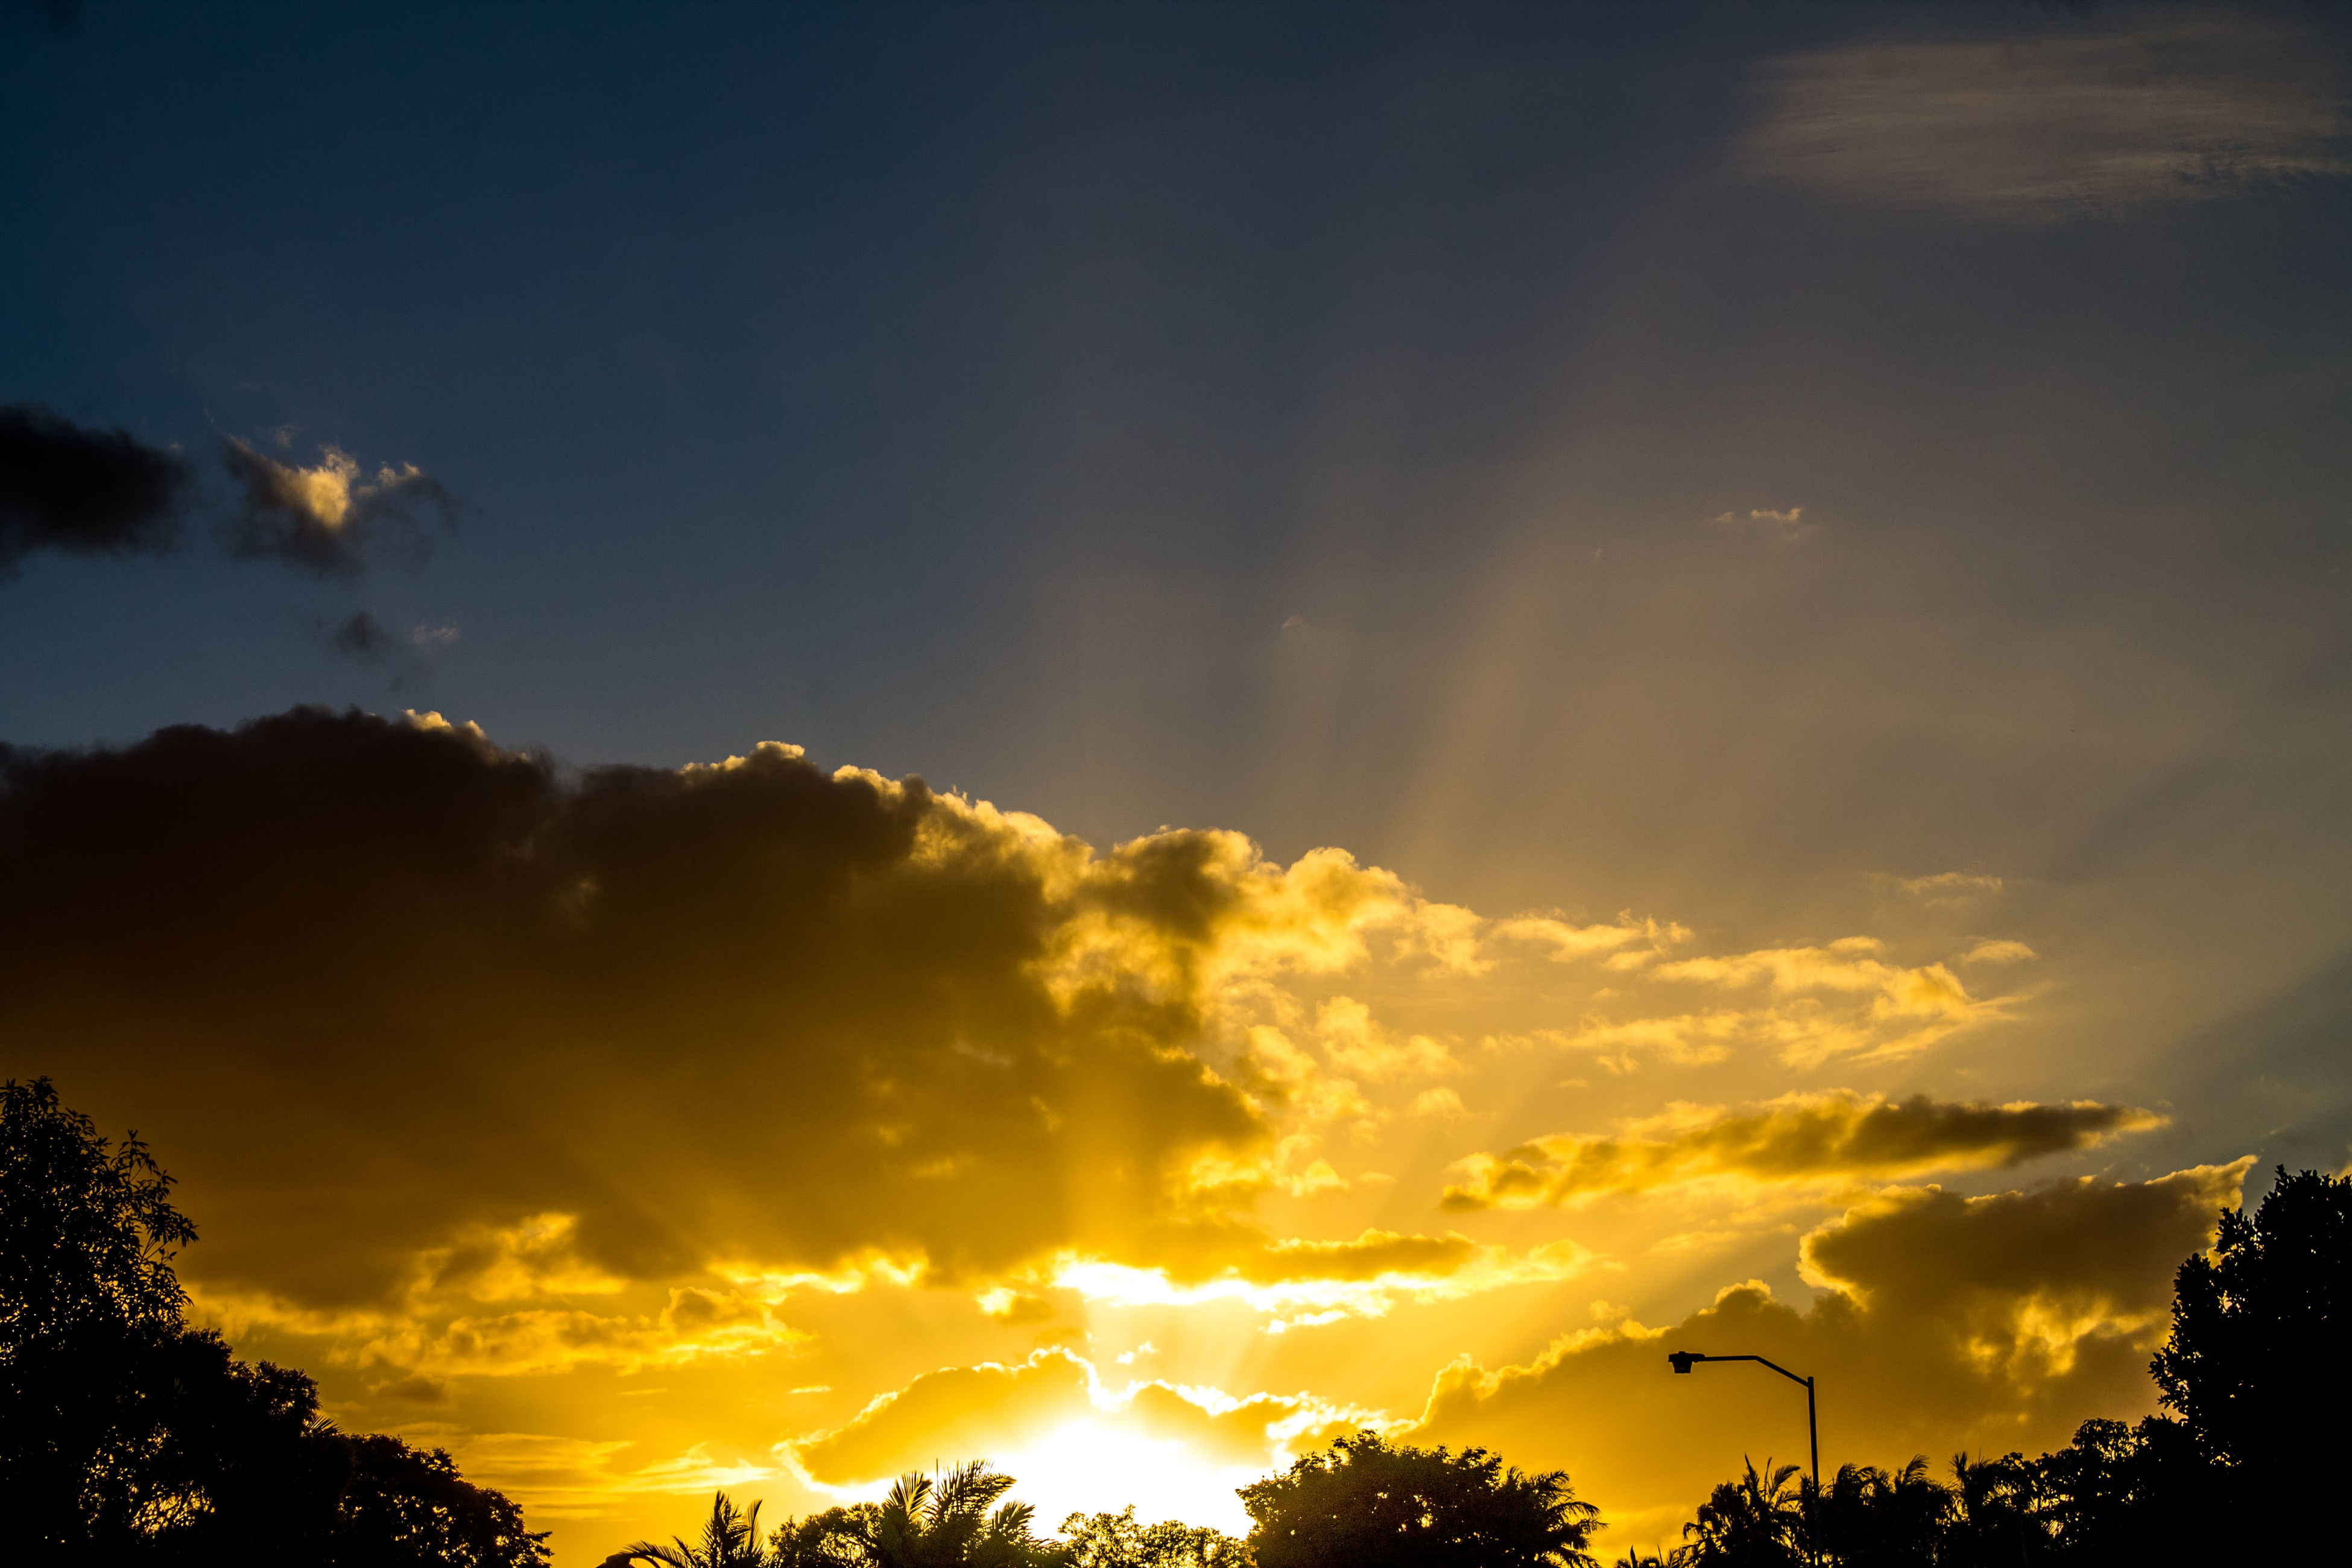 sunset, silhouette, sky, beauty in nature, scenics, low angle view, tree, orange color, tranquility, tranquil scene, nature, cloud - sky, sun, idyllic, cloud, sunlight, dramatic sky, outdoors, yellow, no people